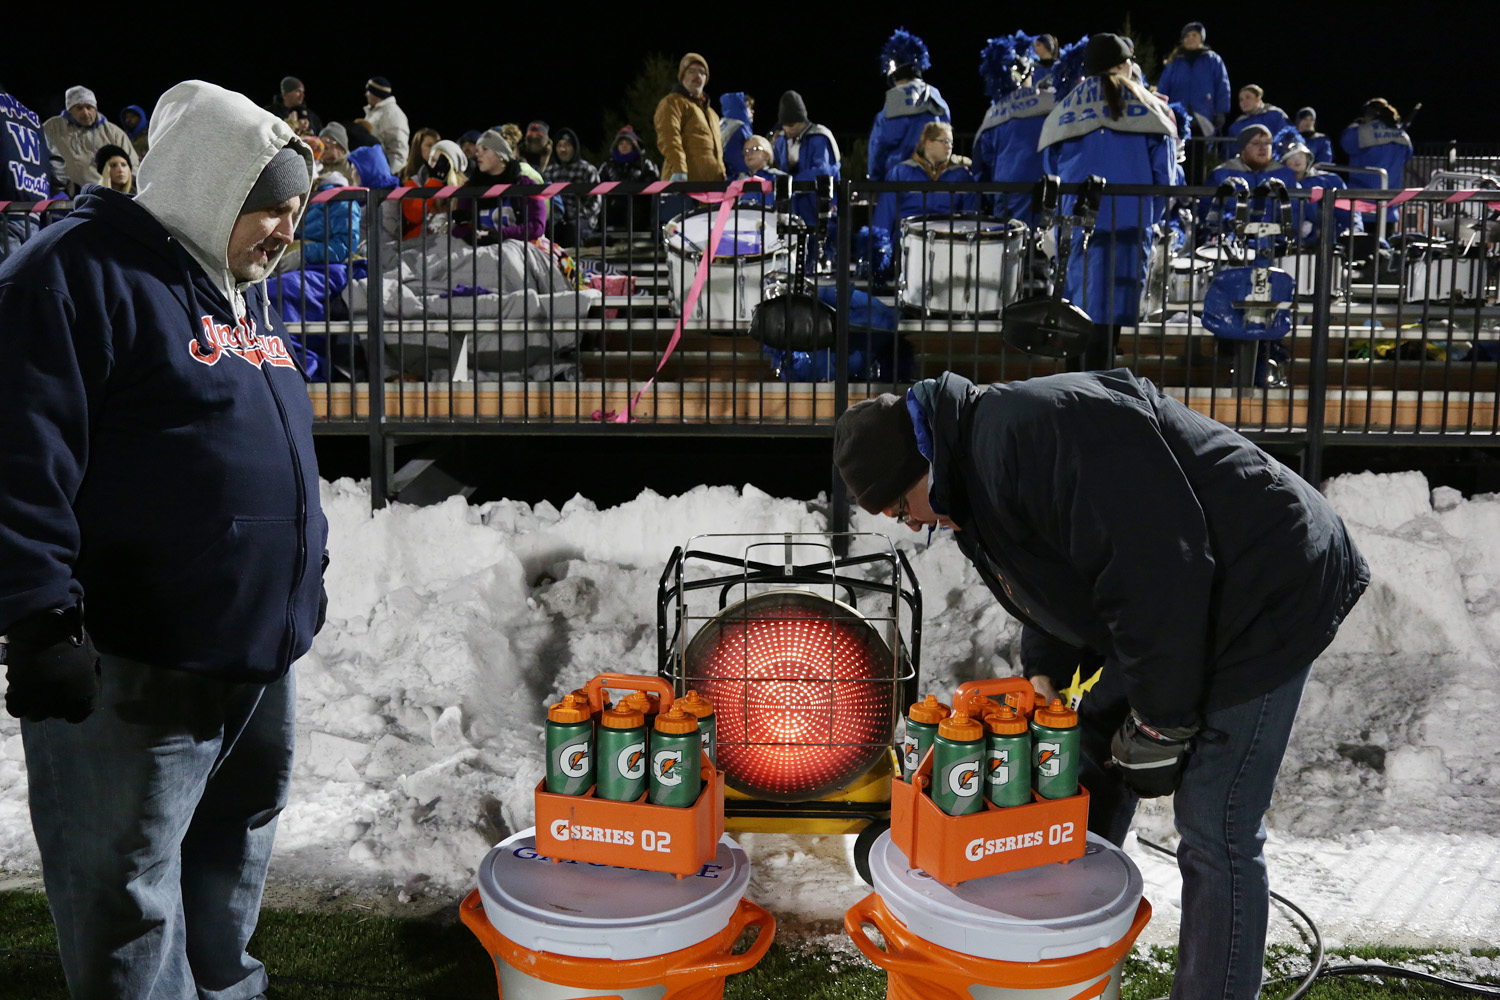 Sports feature, it was so cold the water bottles froze, so trying to unfreeze them before the game